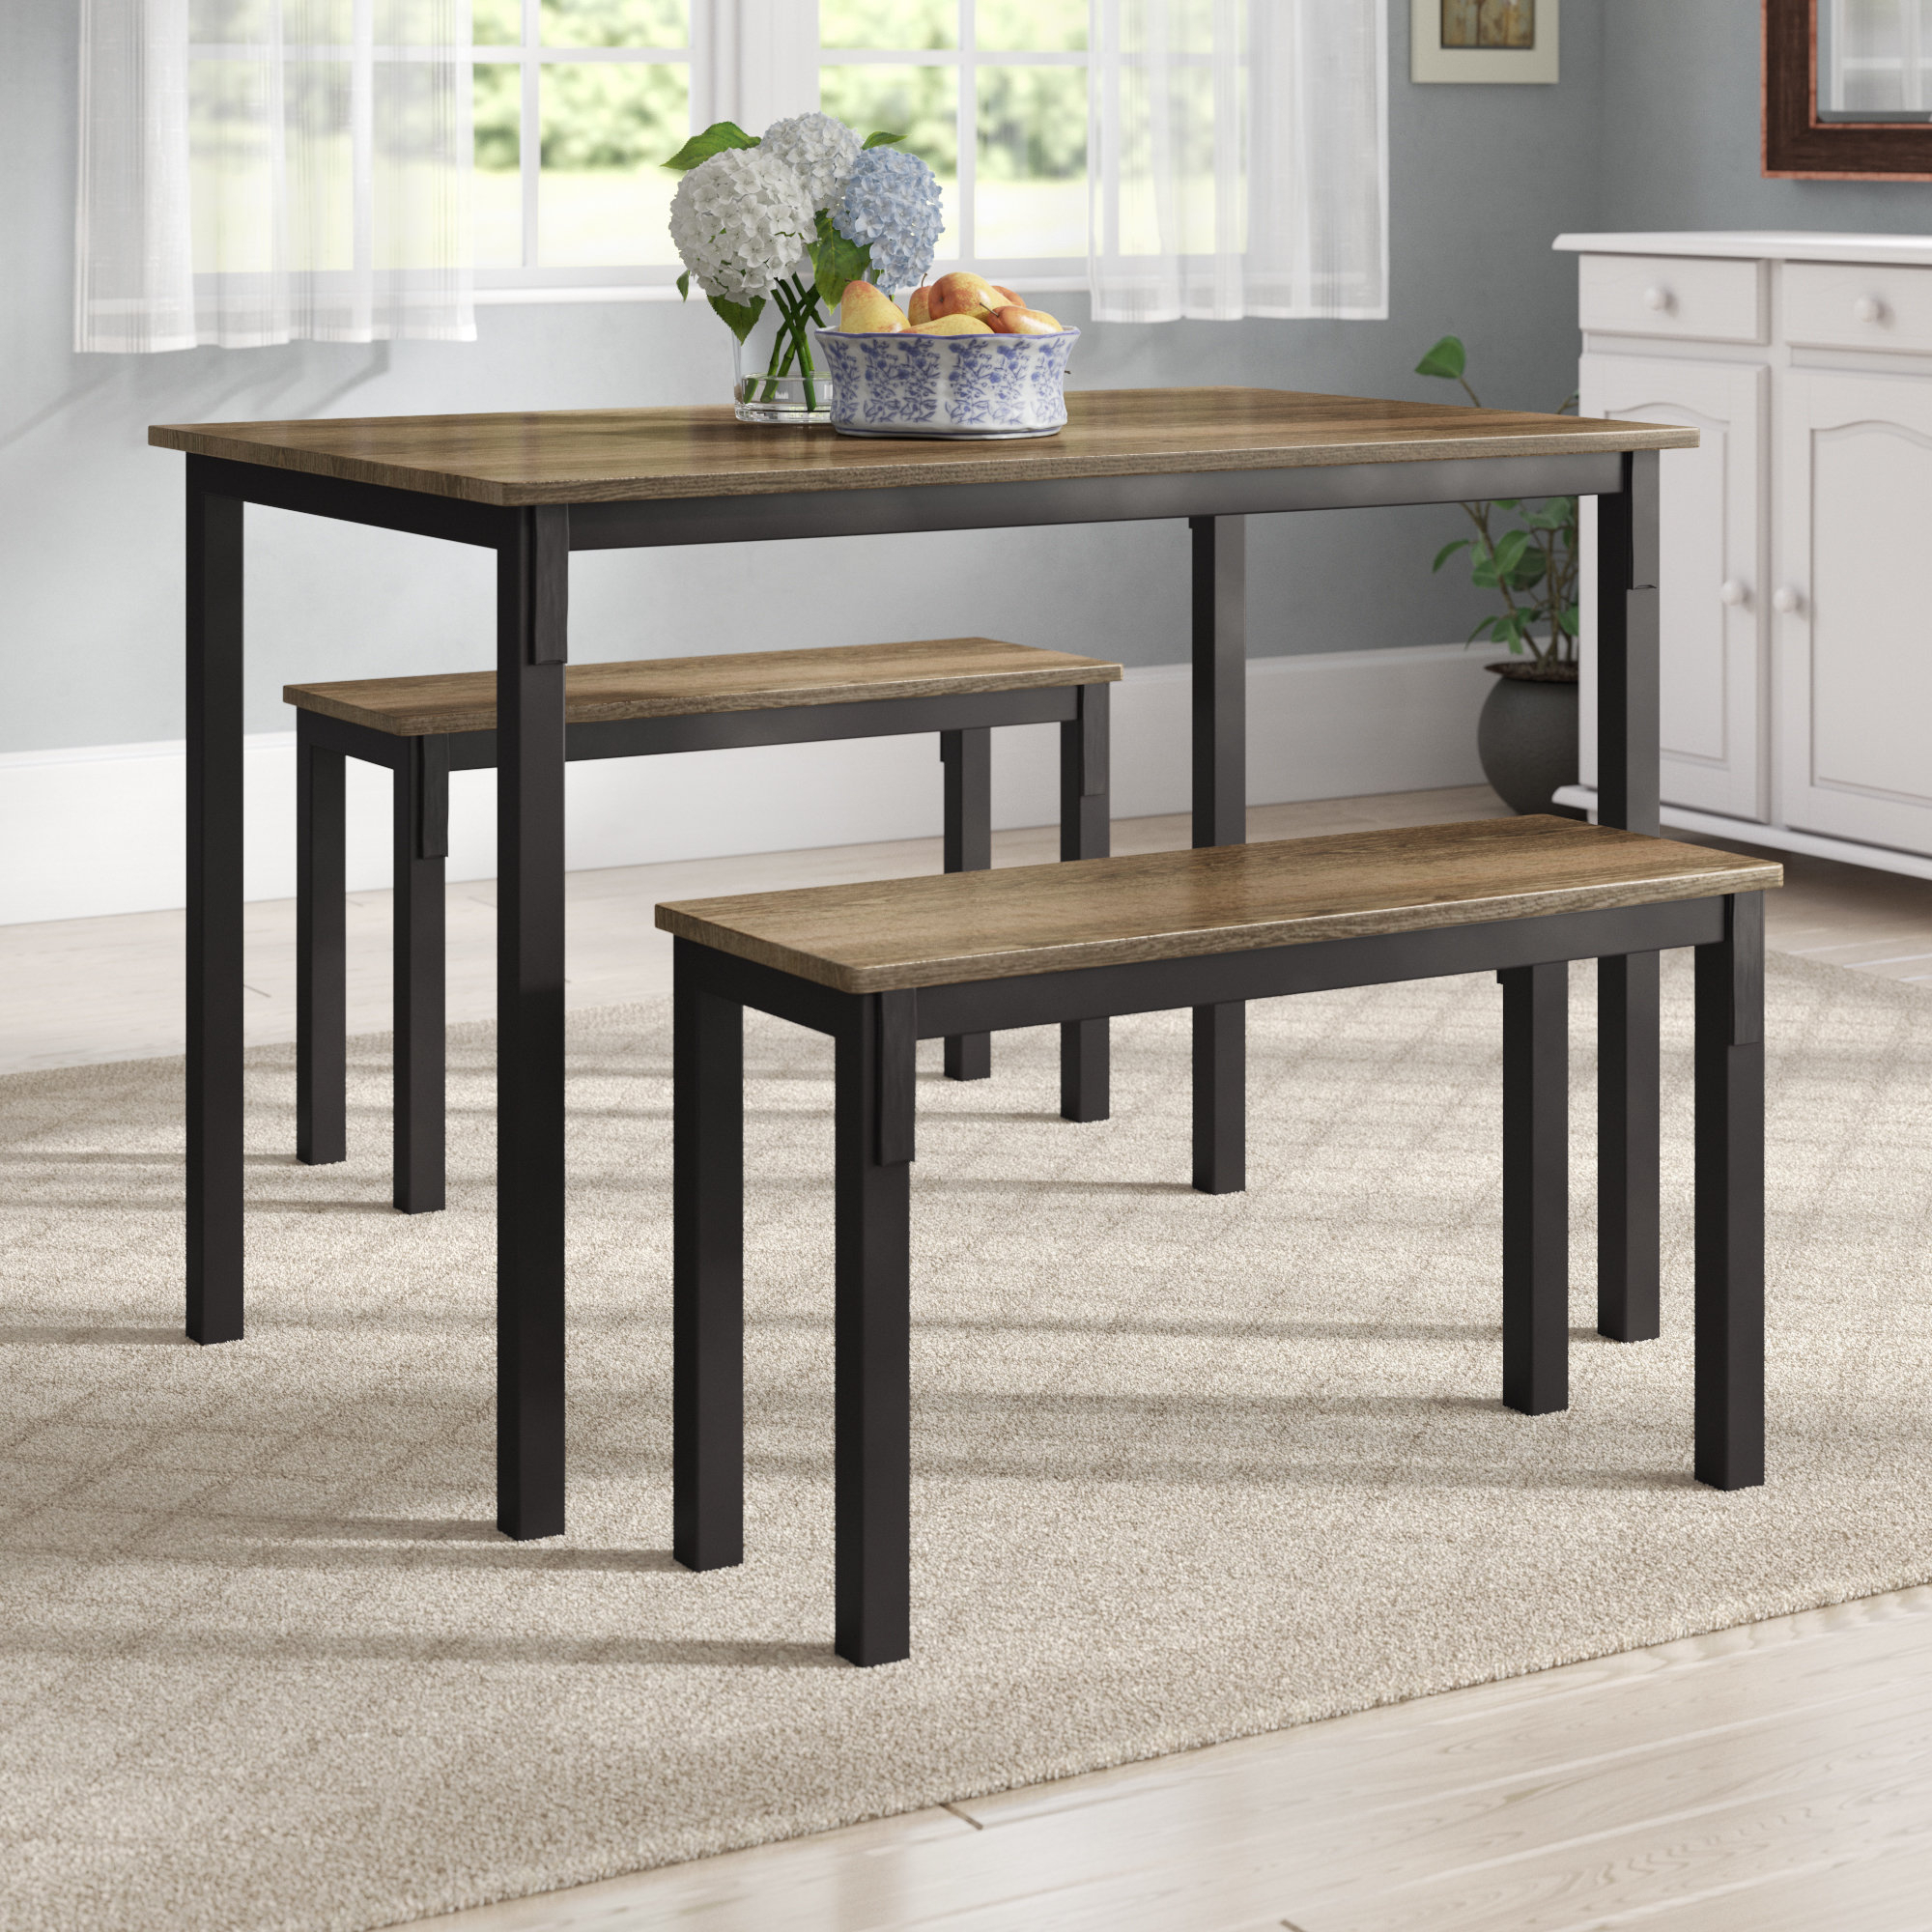 Ryker 3 Piece Dining Sets Regarding Well Known Andover Mills Rossiter 3 Piece Dining Set & Reviews (View 4 of 20)